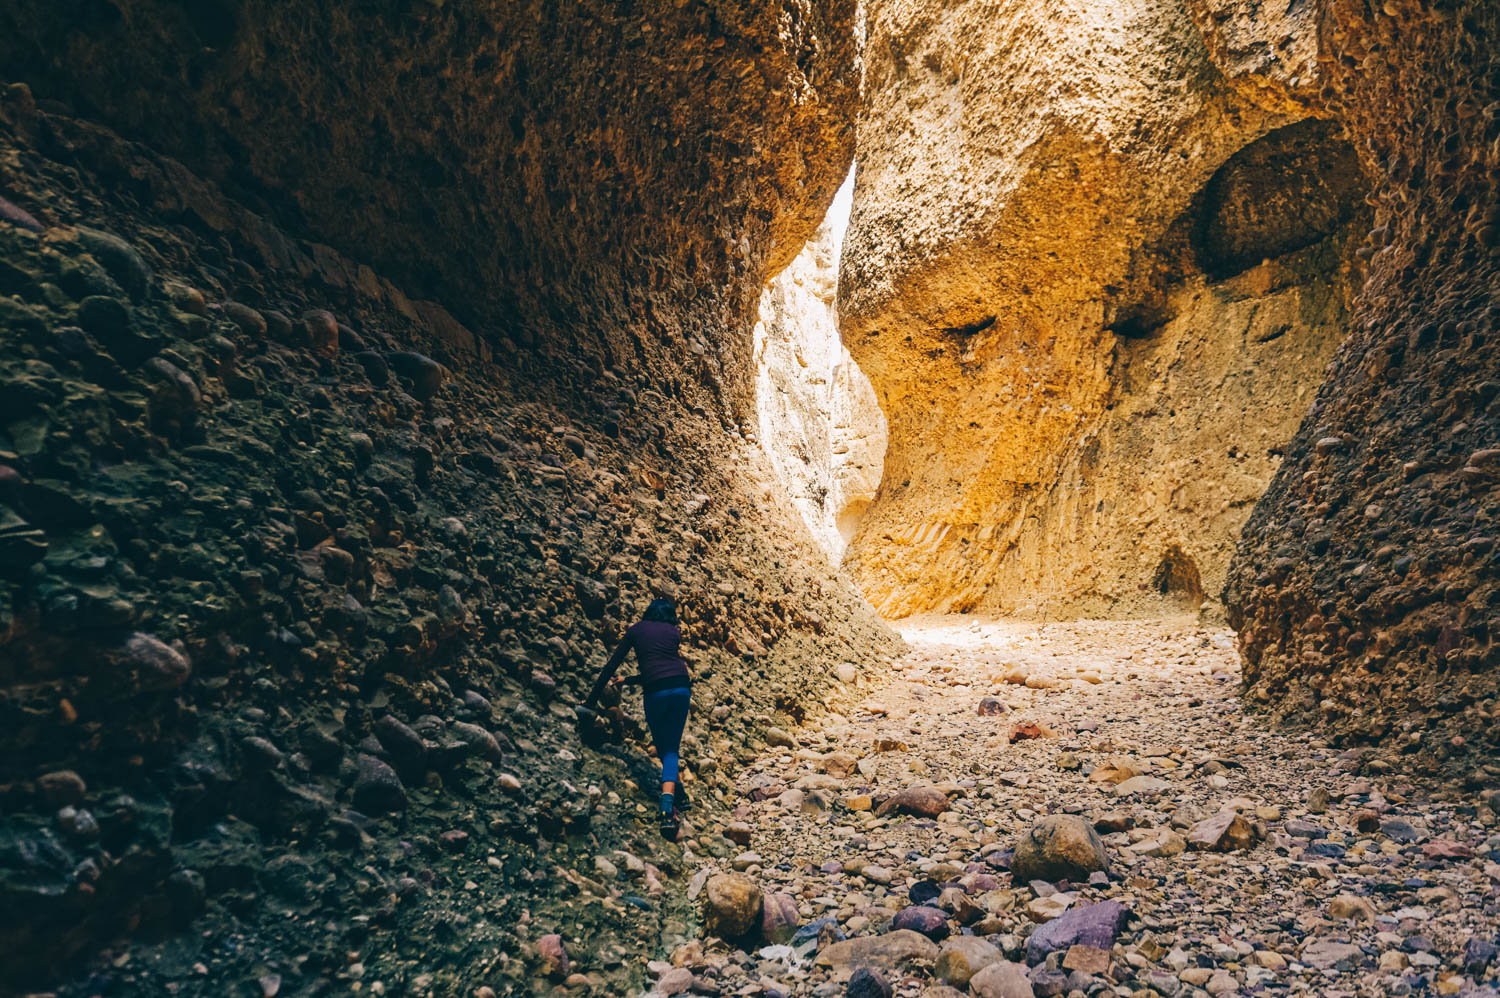 Exploring Box Canyon.